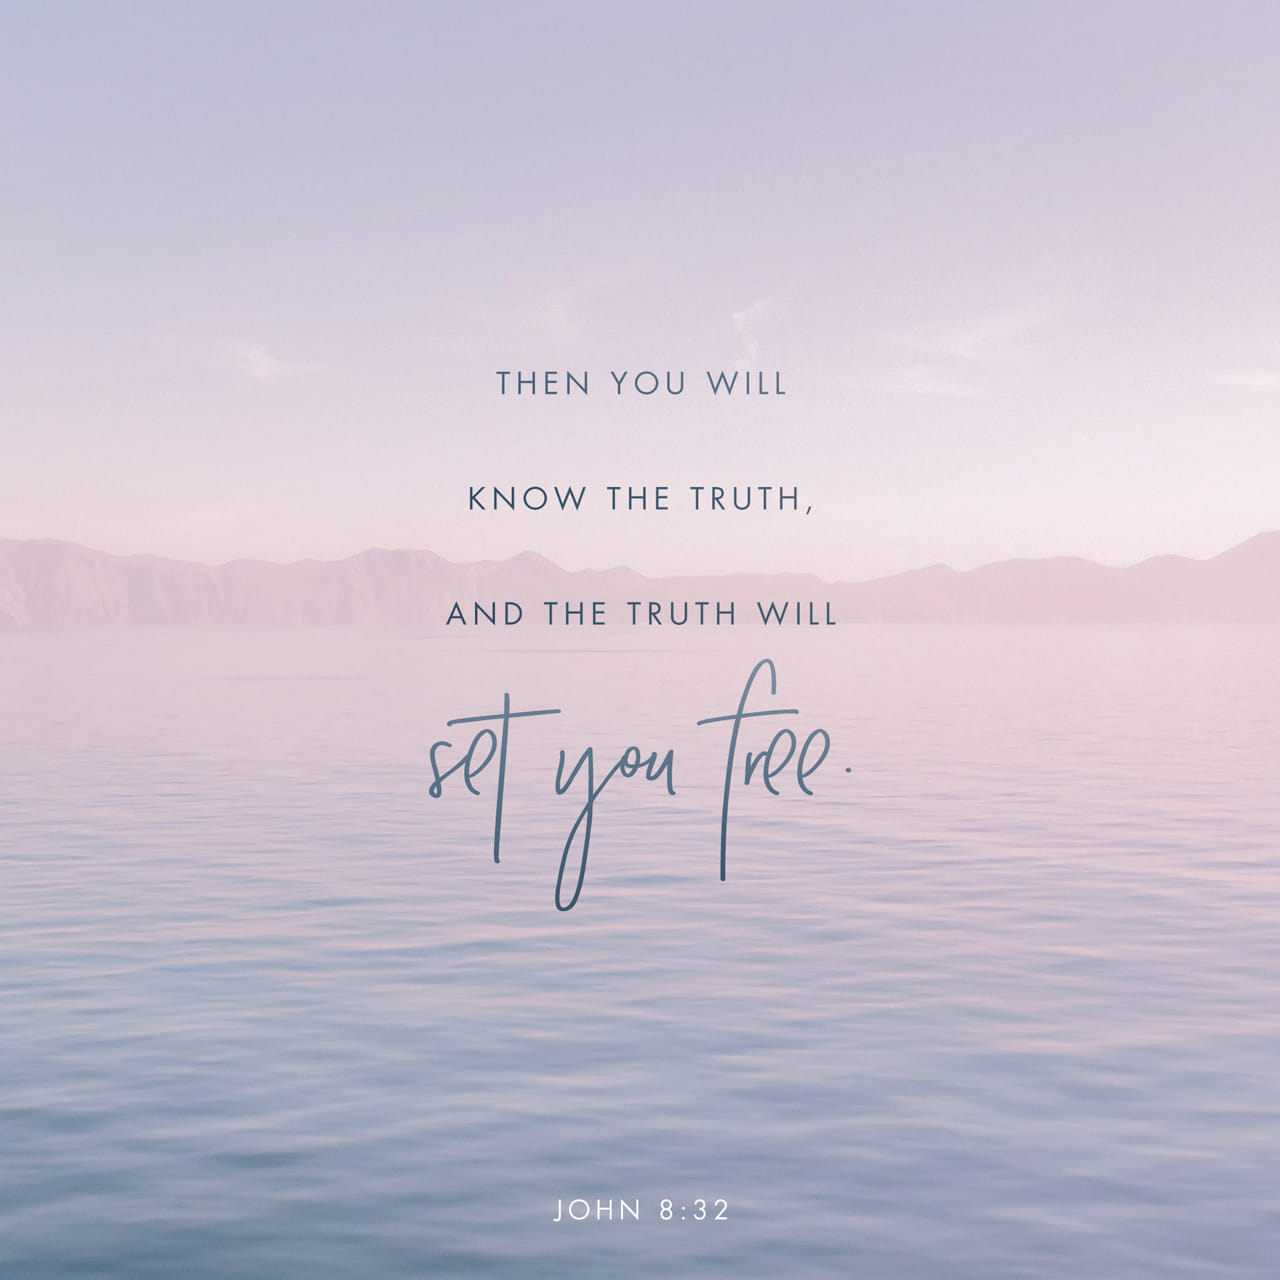 John 8:32 And ye shall know the truth, and the truth shall make you free. | King James Version (KJV)